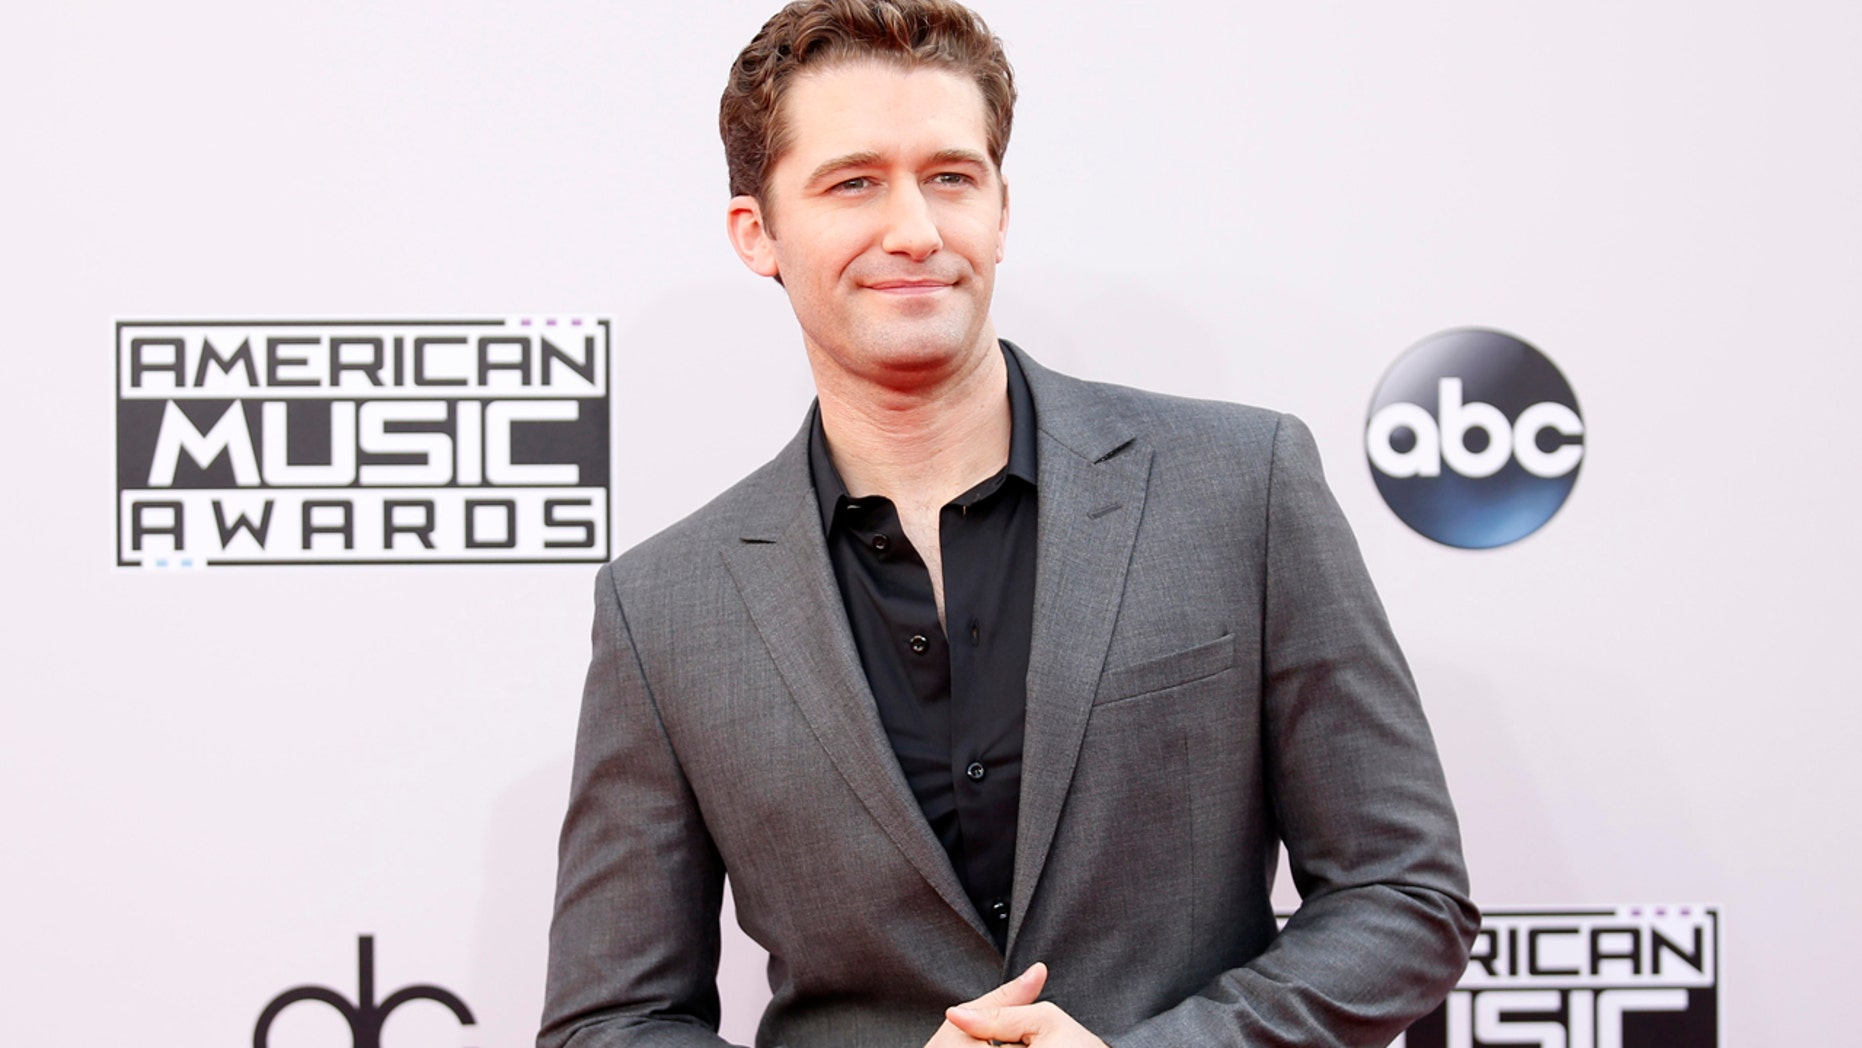 Actor Matthew Morrison arrives at the 42nd American Music Awards in Los Angeles, on Nov. 23, 2014.